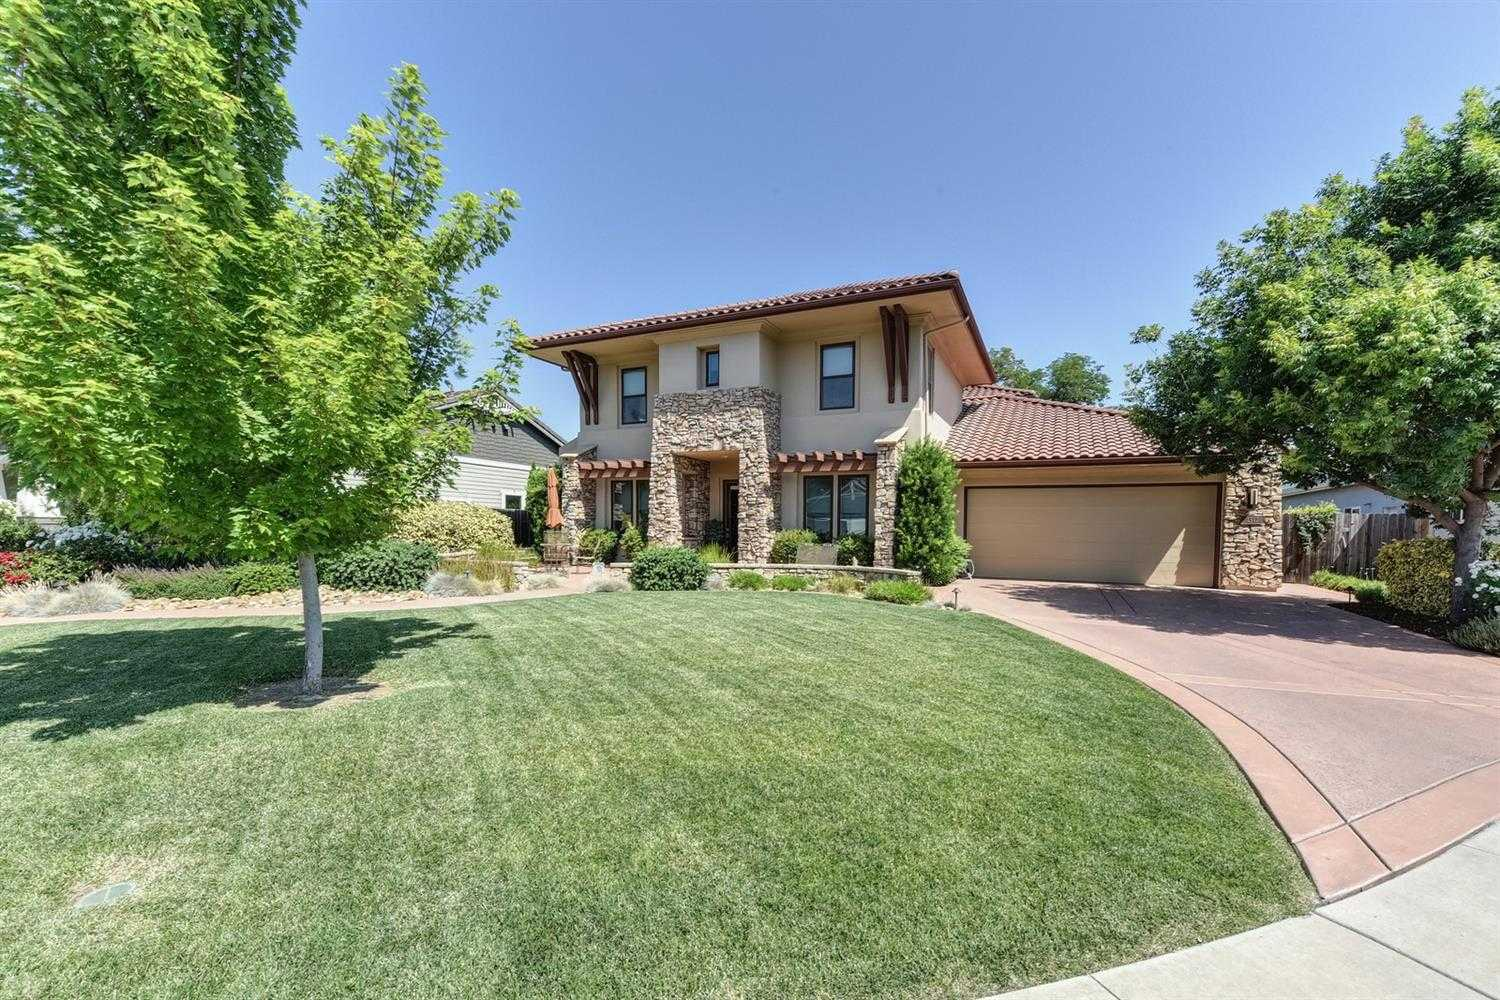 $1,399,000 - 5Br/3Ba -  for Sale in Cassel Lane, Davis